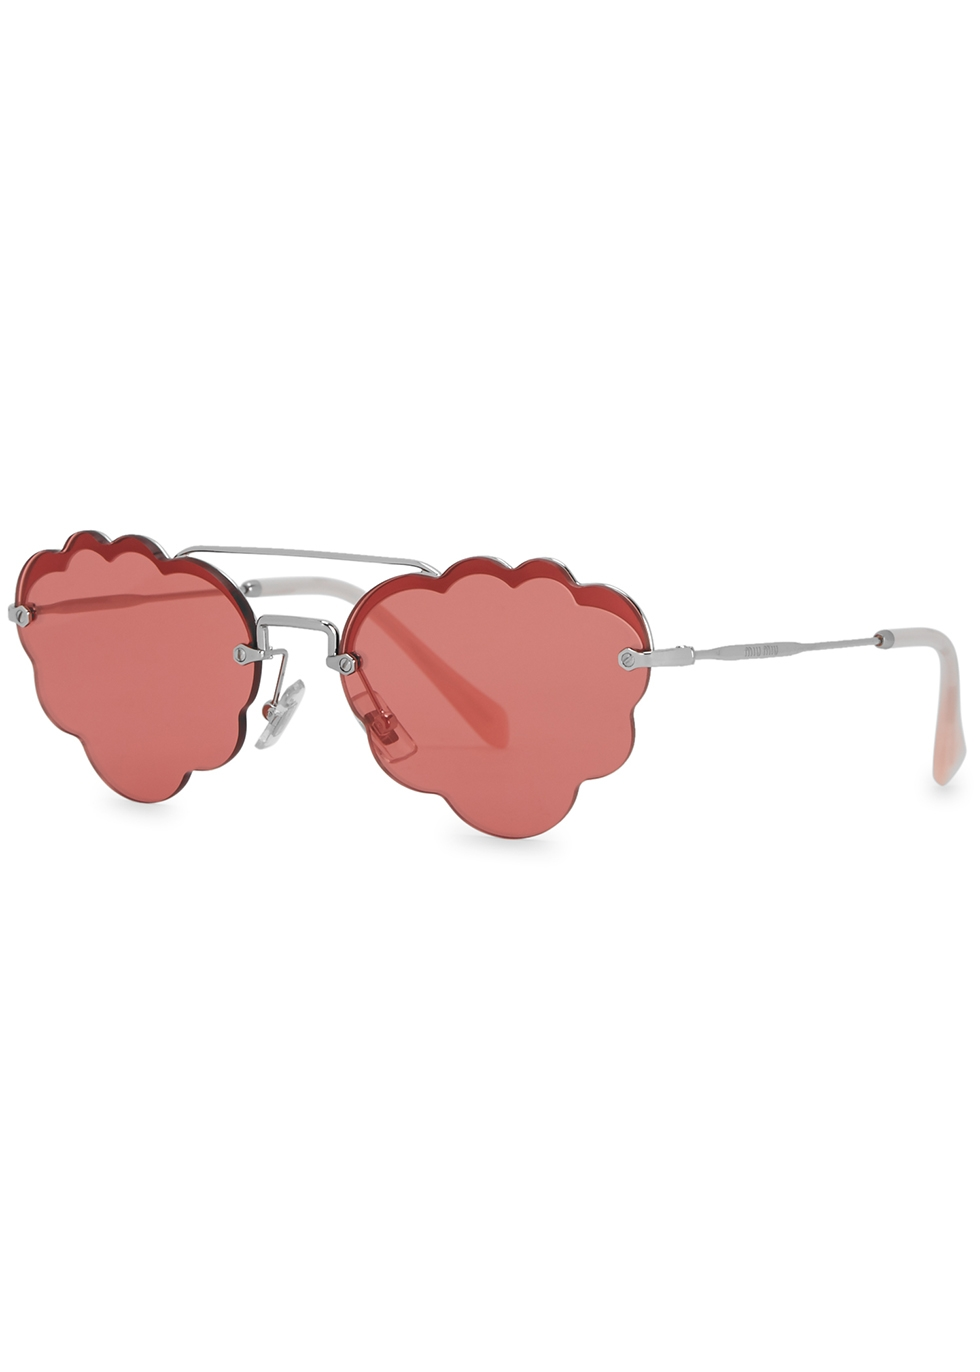 Pink scalloped aviator-style sunglasses - Miu Miu